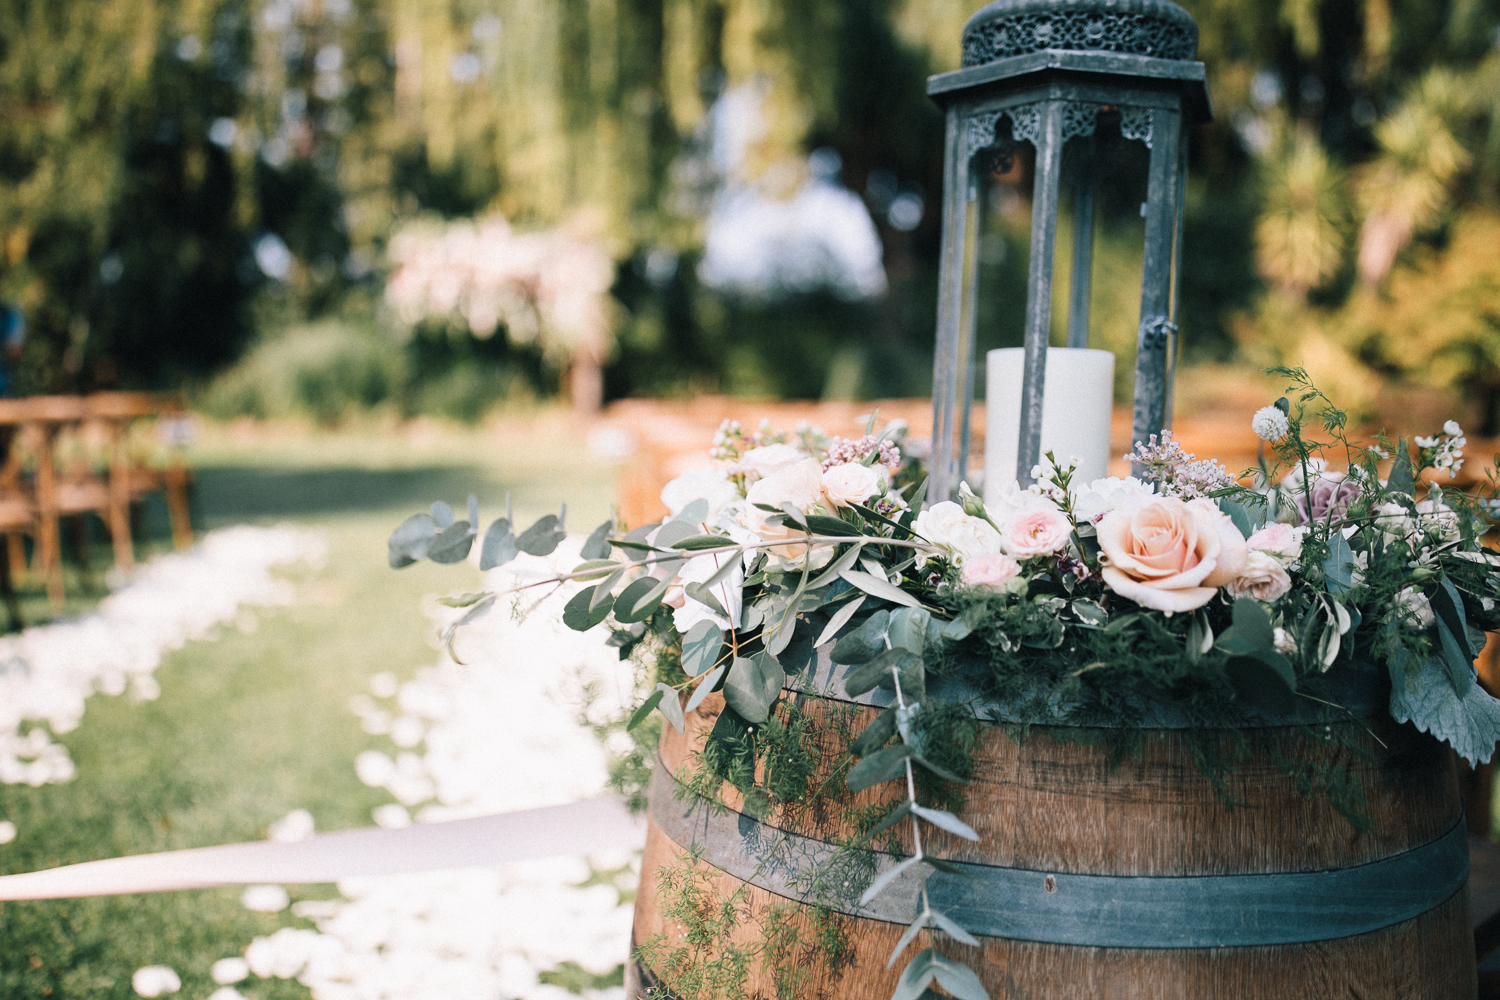 2018_08_ 112018.08.11 Cline Vinyard Wedding Blog Photos Edited For Web 0039.jpg